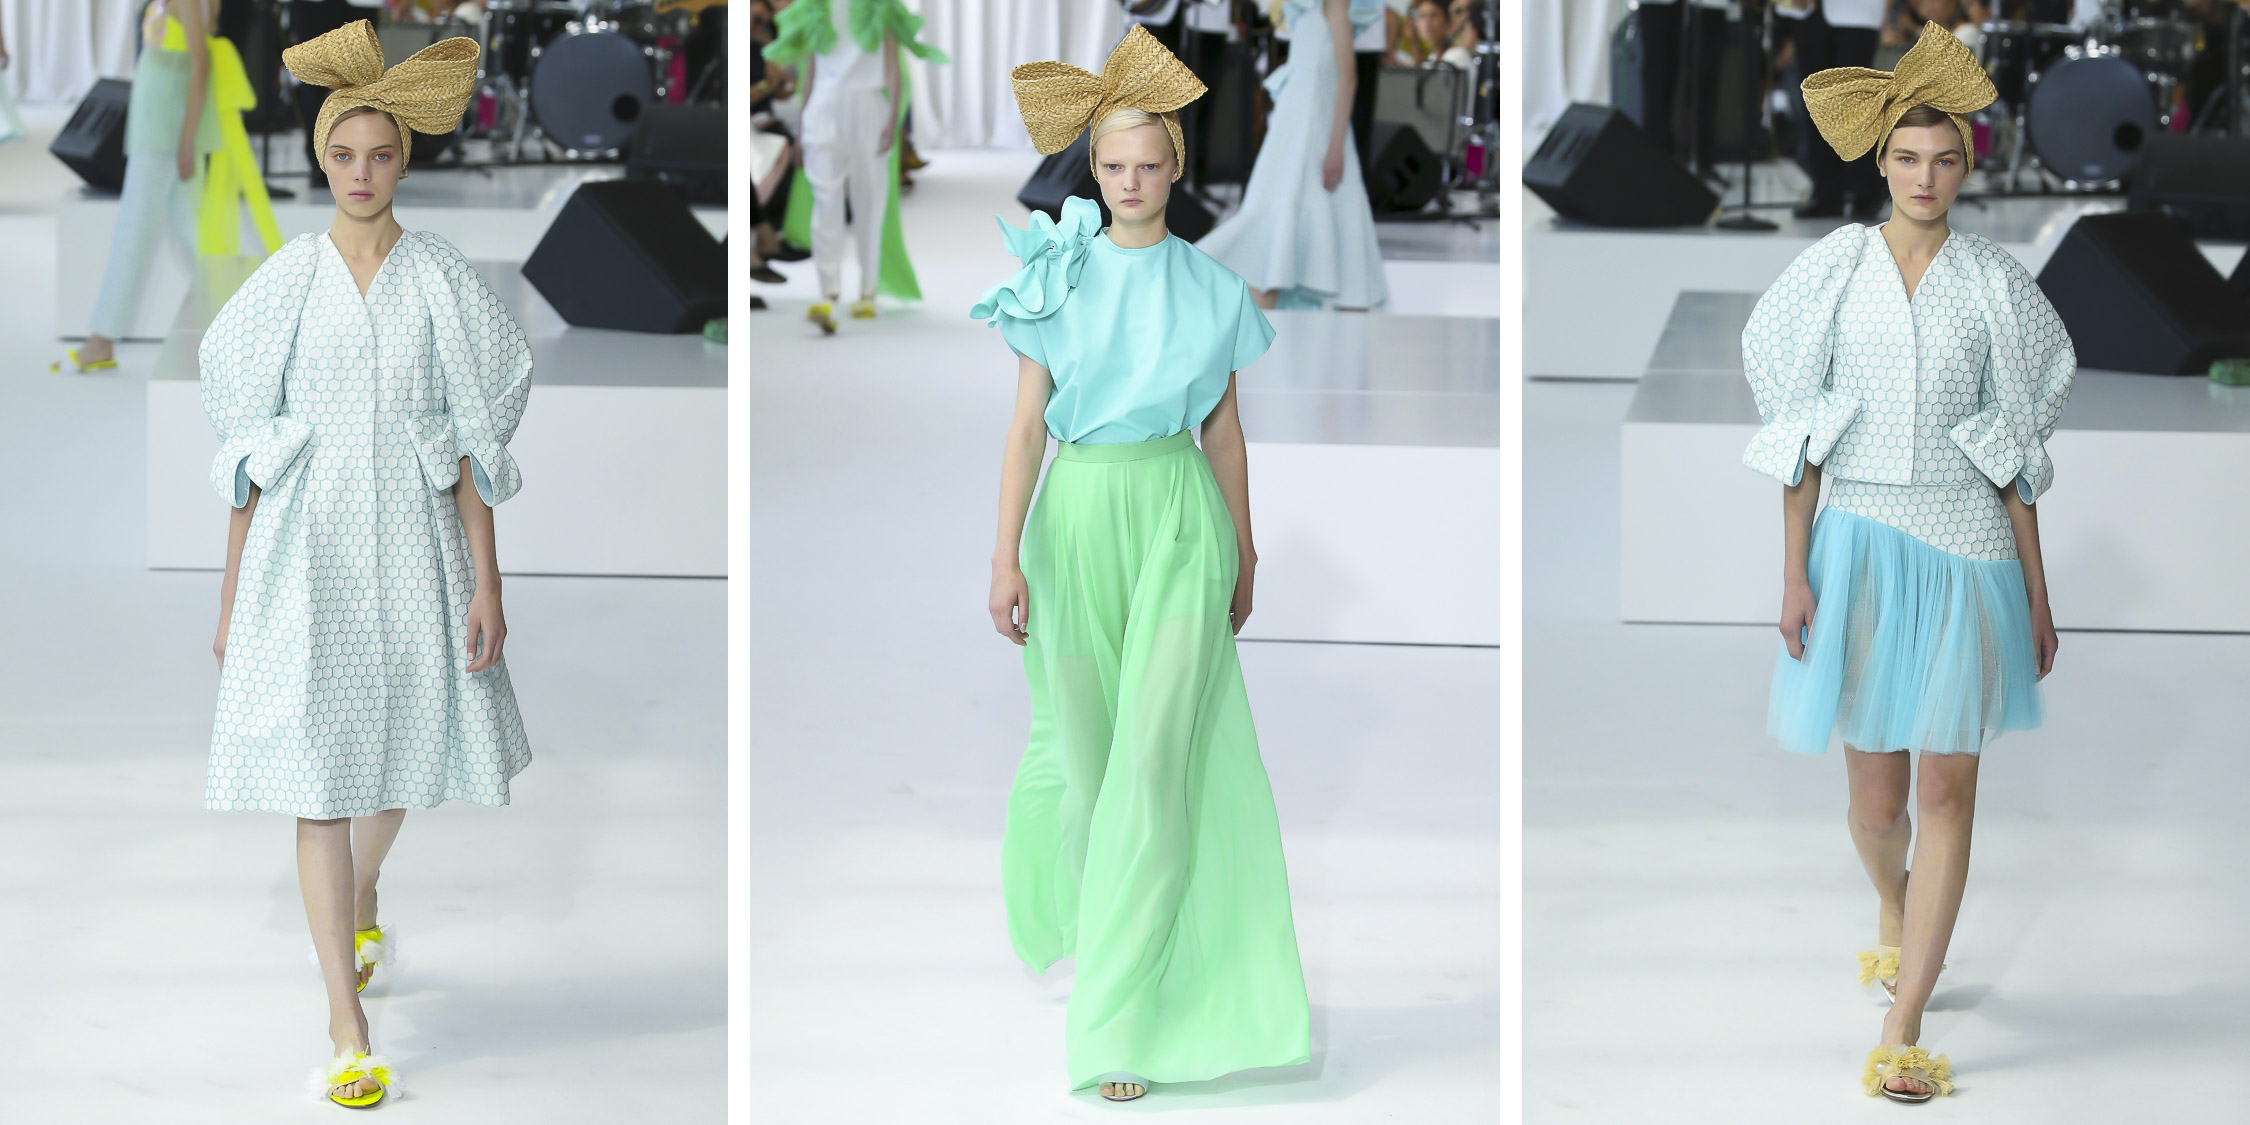 Delpozo Spring 2018 Ready To Wear, new-york-fashion-week-2017-best-collections_delpozo-spring-2018-rtw-6